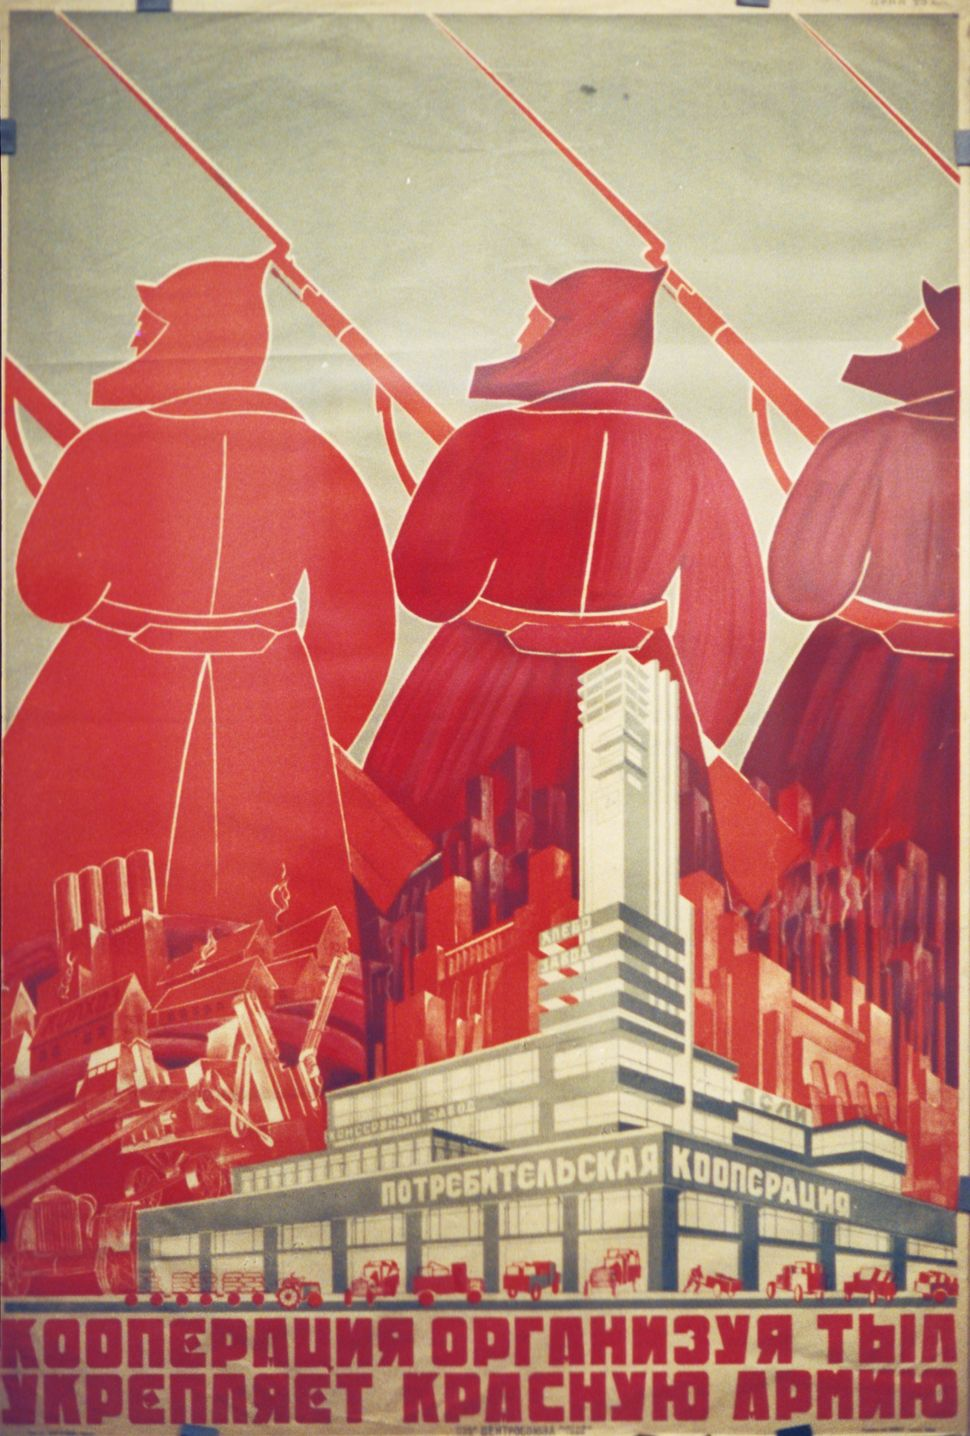 "1920: ""The organization of consumer cooperatives strengthens the Red Army."""